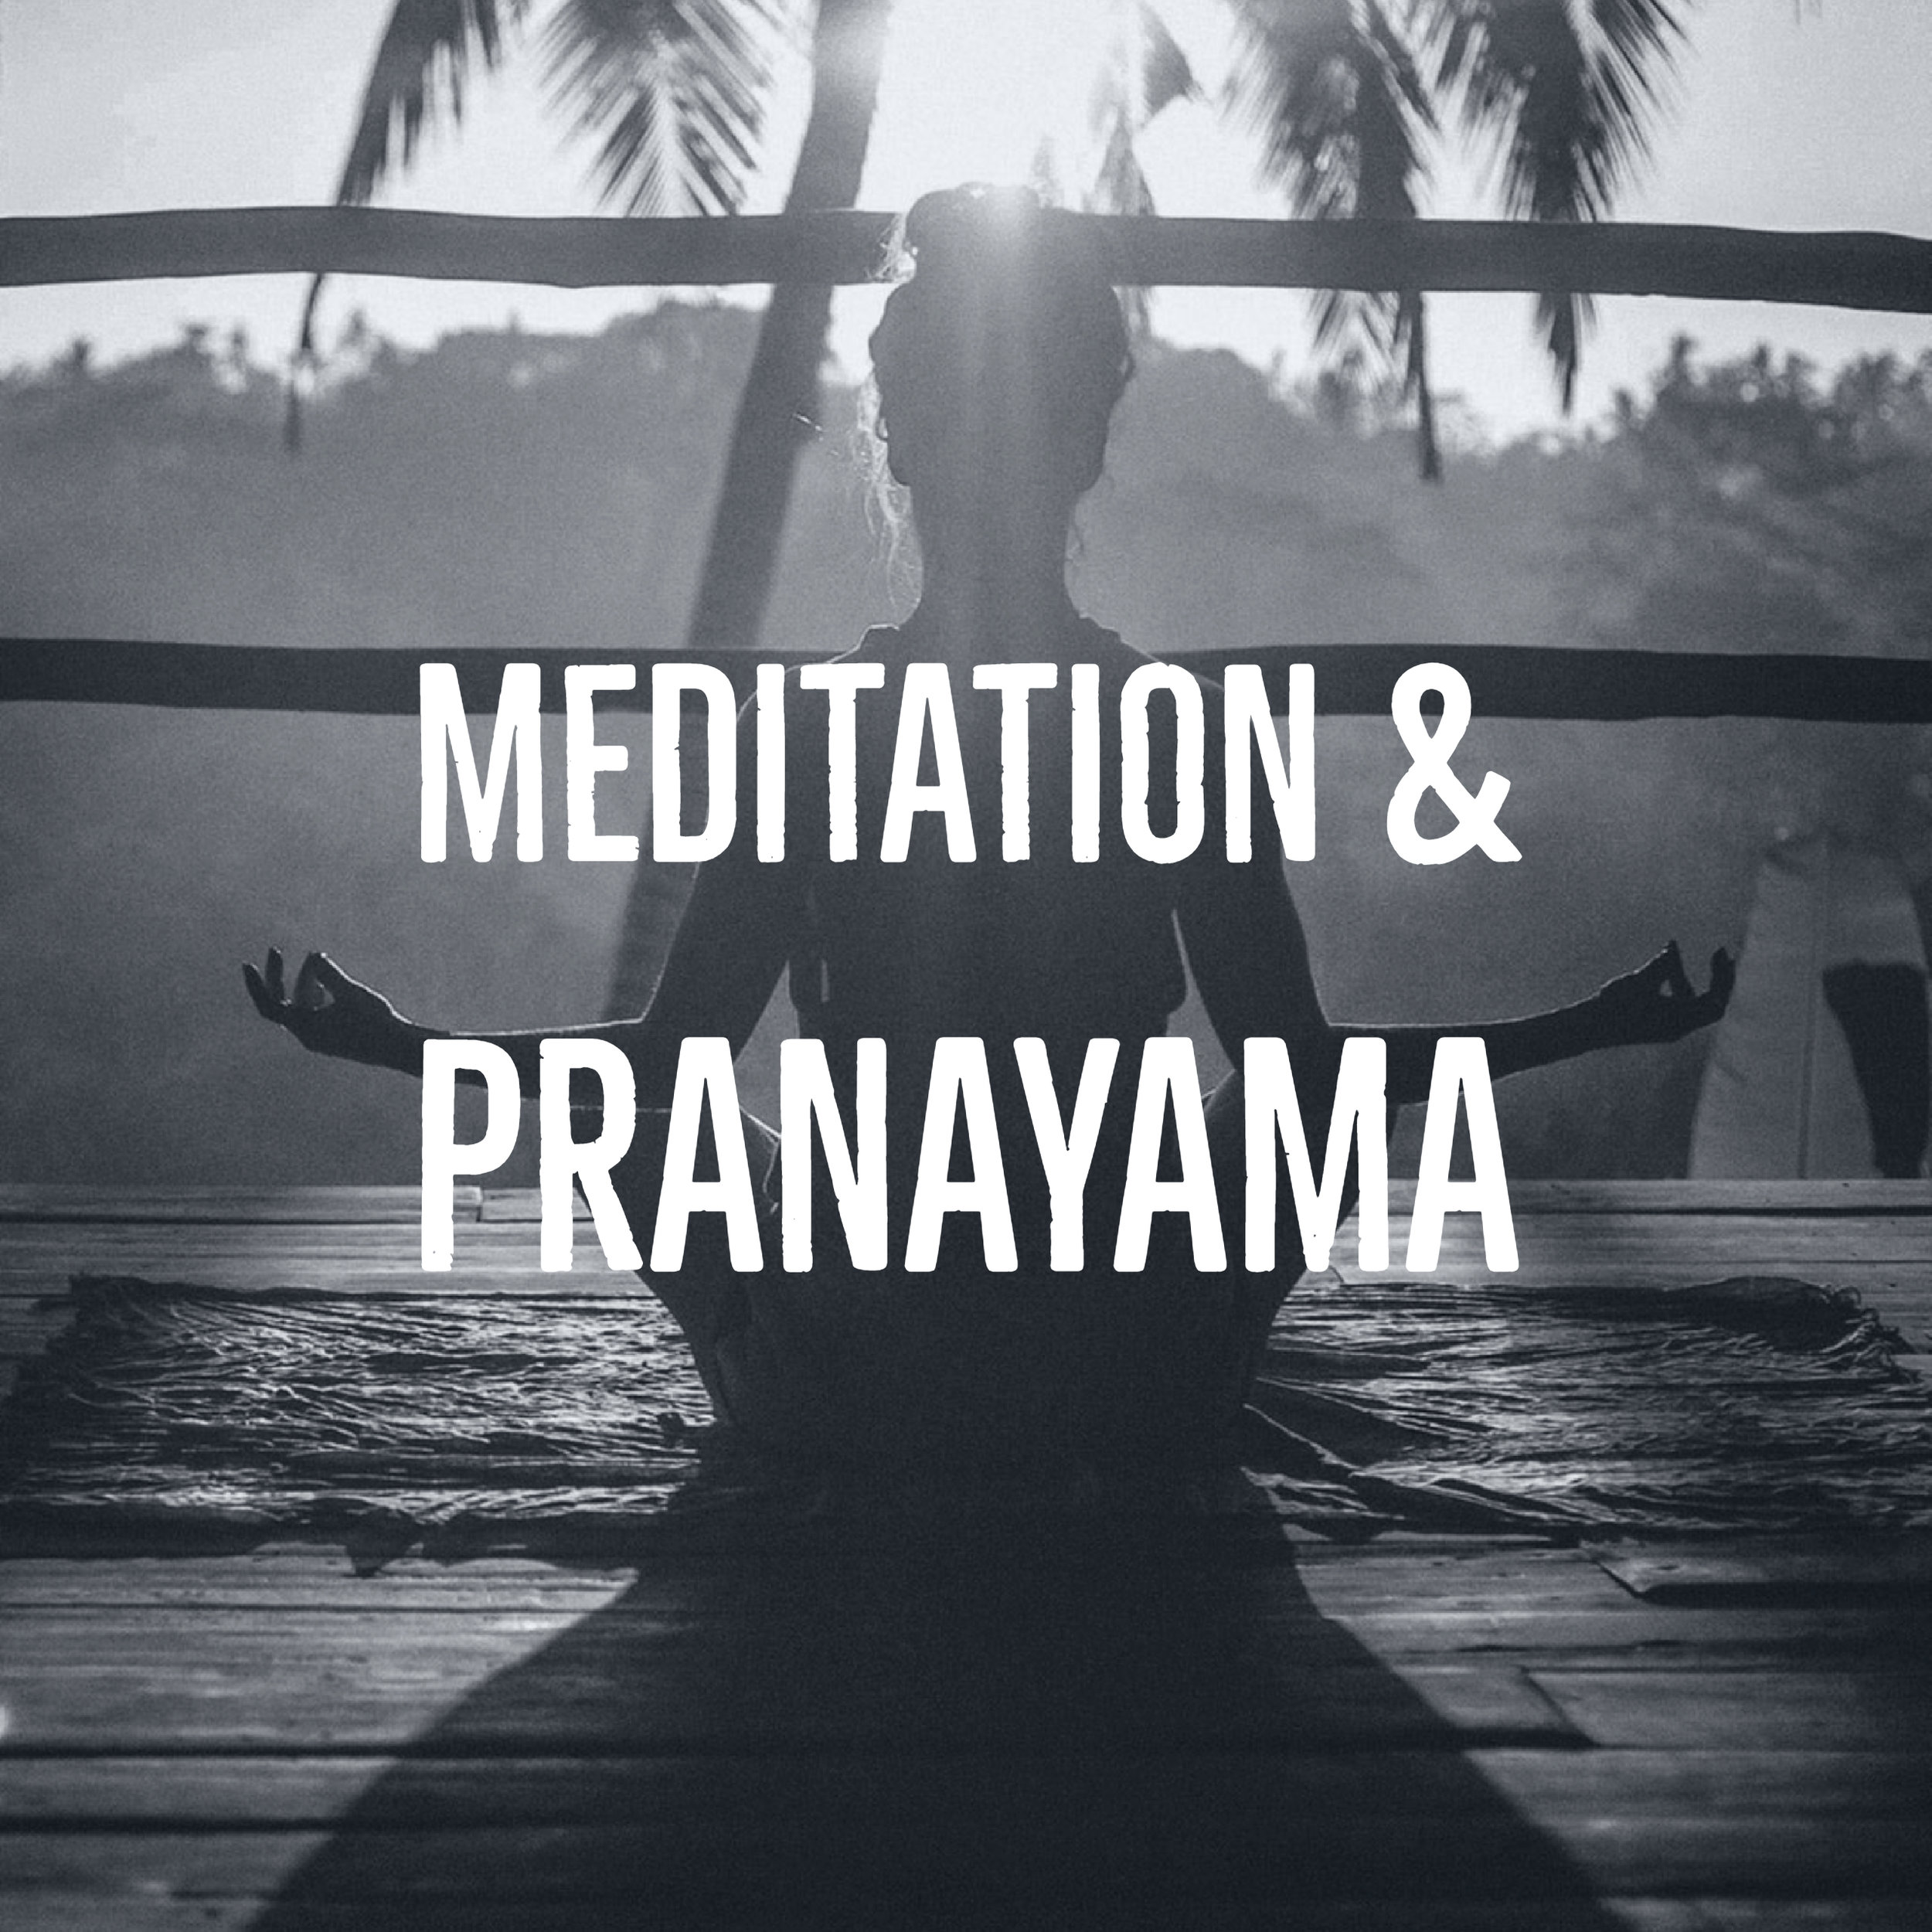 Meditation & Pranayama - This 45 minute class begins with a discussion of our breath and a weekly practice of directing our breath to support our well-being. Transitioning to meditation, we will discuss and practice various postures, styles, and techniques of meditation. This class is open to all who are looking to calm the mind and deepen their experience with the mind/body connection and manifest peace.